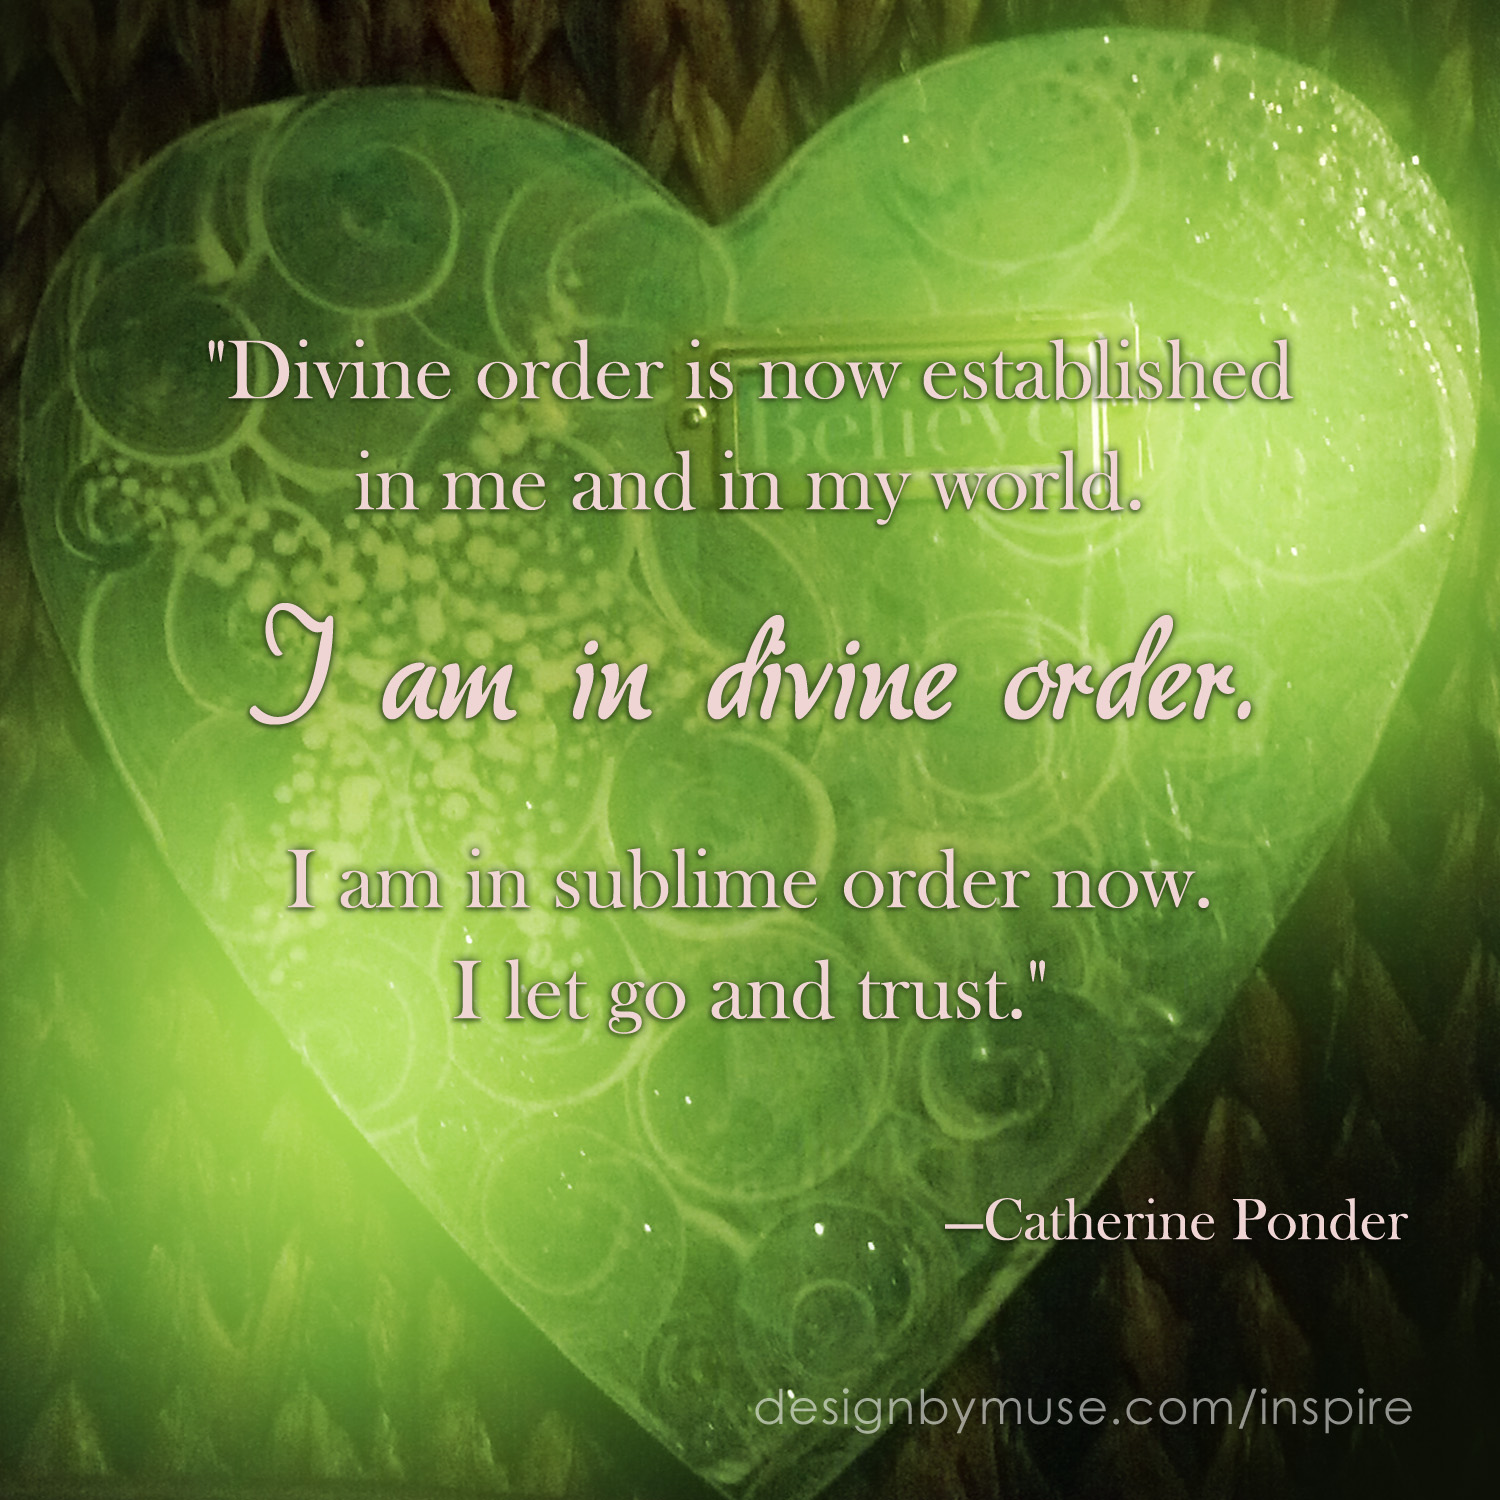 Quotes about Divine order (4 quotes)